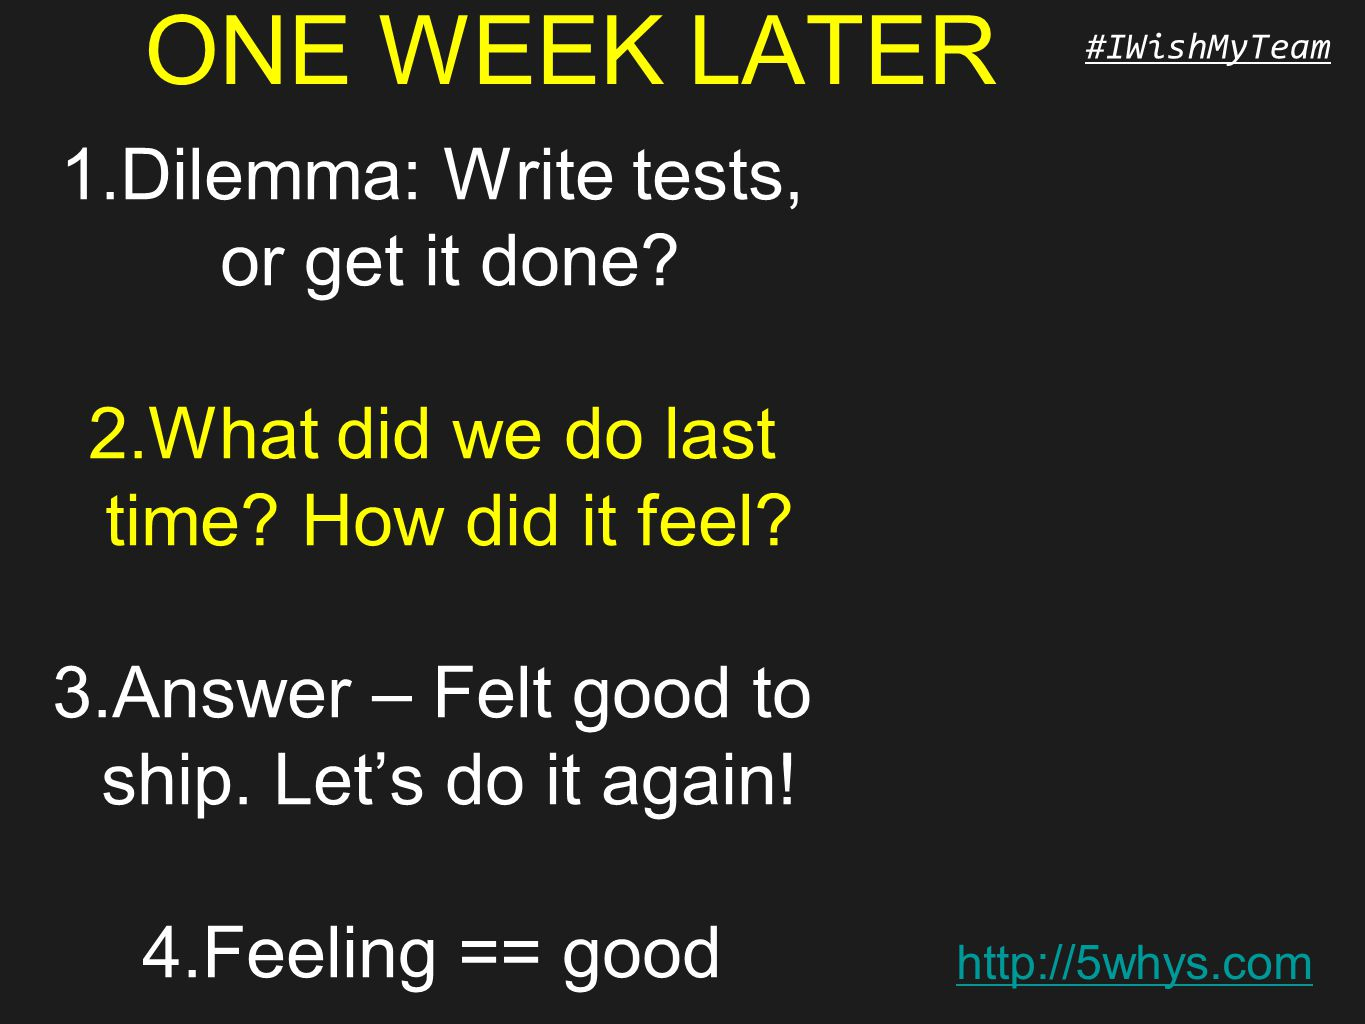 http://5whys.com #IWishMyTeam ONE WEEK LATER 1.Dilemma: Write tests, or get it done? 2.What did we do last time? How did it feel? 3.Answer – Felt good